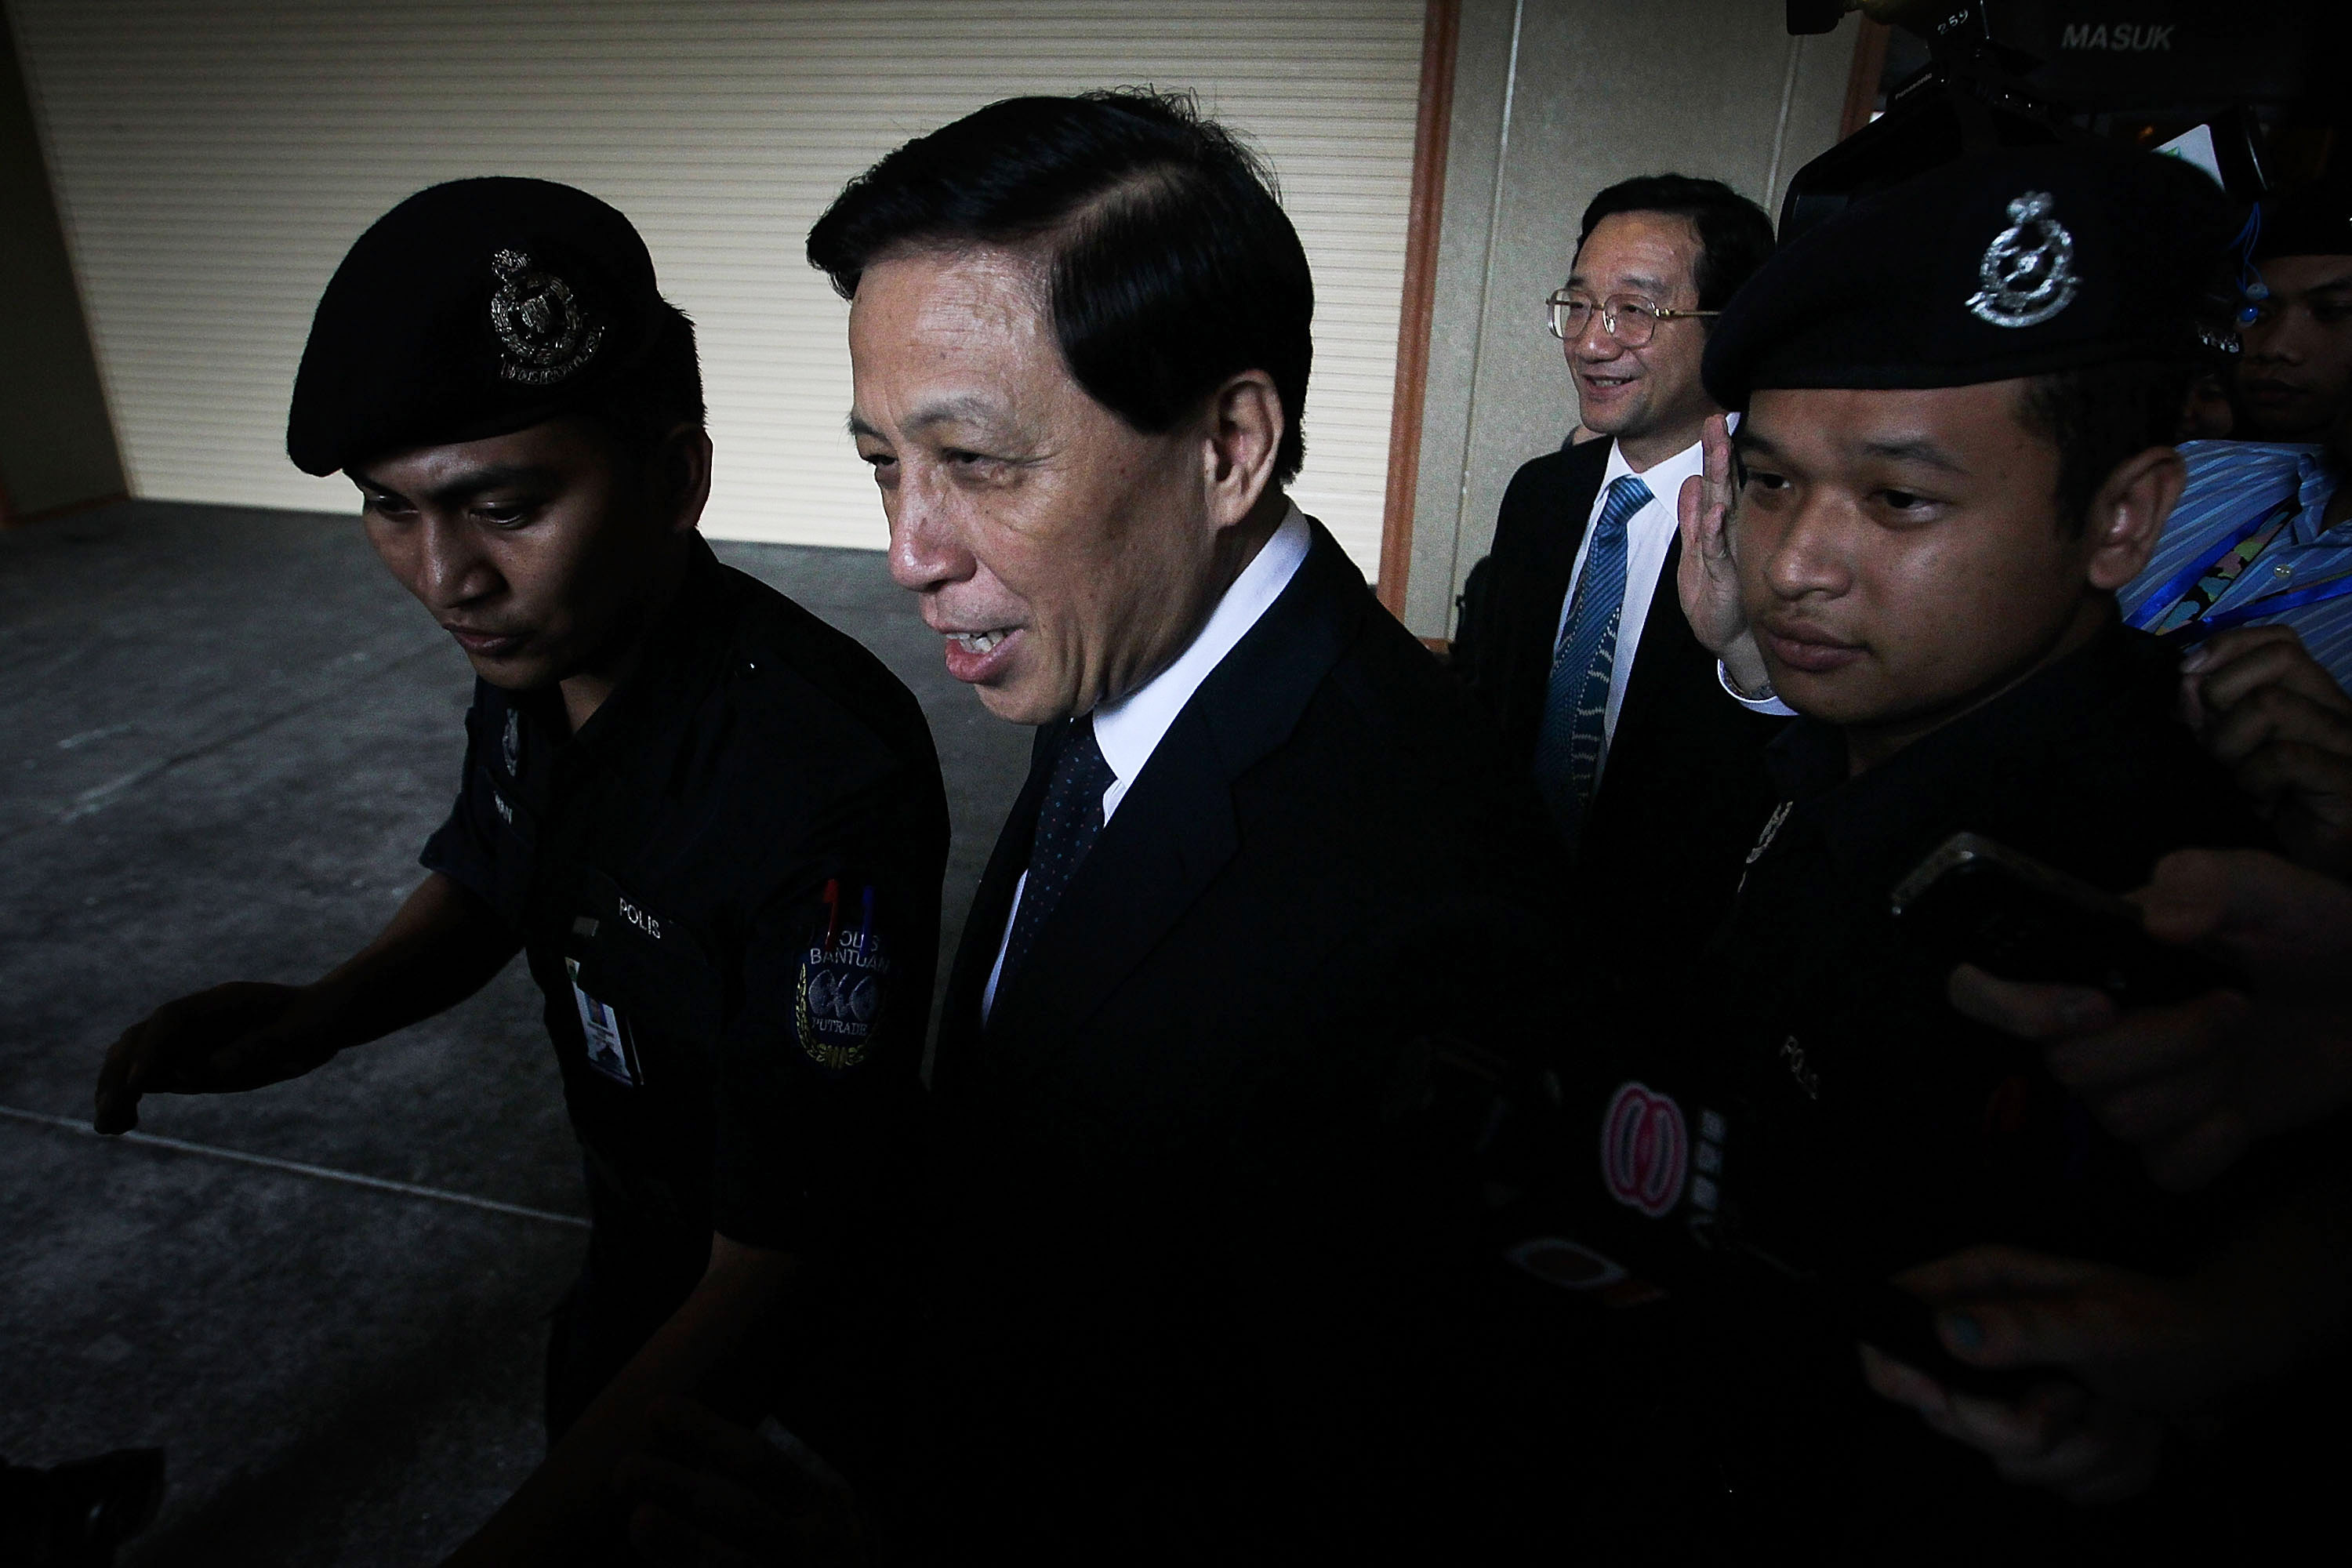 Chinese special envoy Zhang Yesui leaves after a meeting with Malaysian officials on March 26, 2014 in Kuala Lumpur. He is tasked with asking Malaysia to  properly handle  the investigation into the fate of MH370